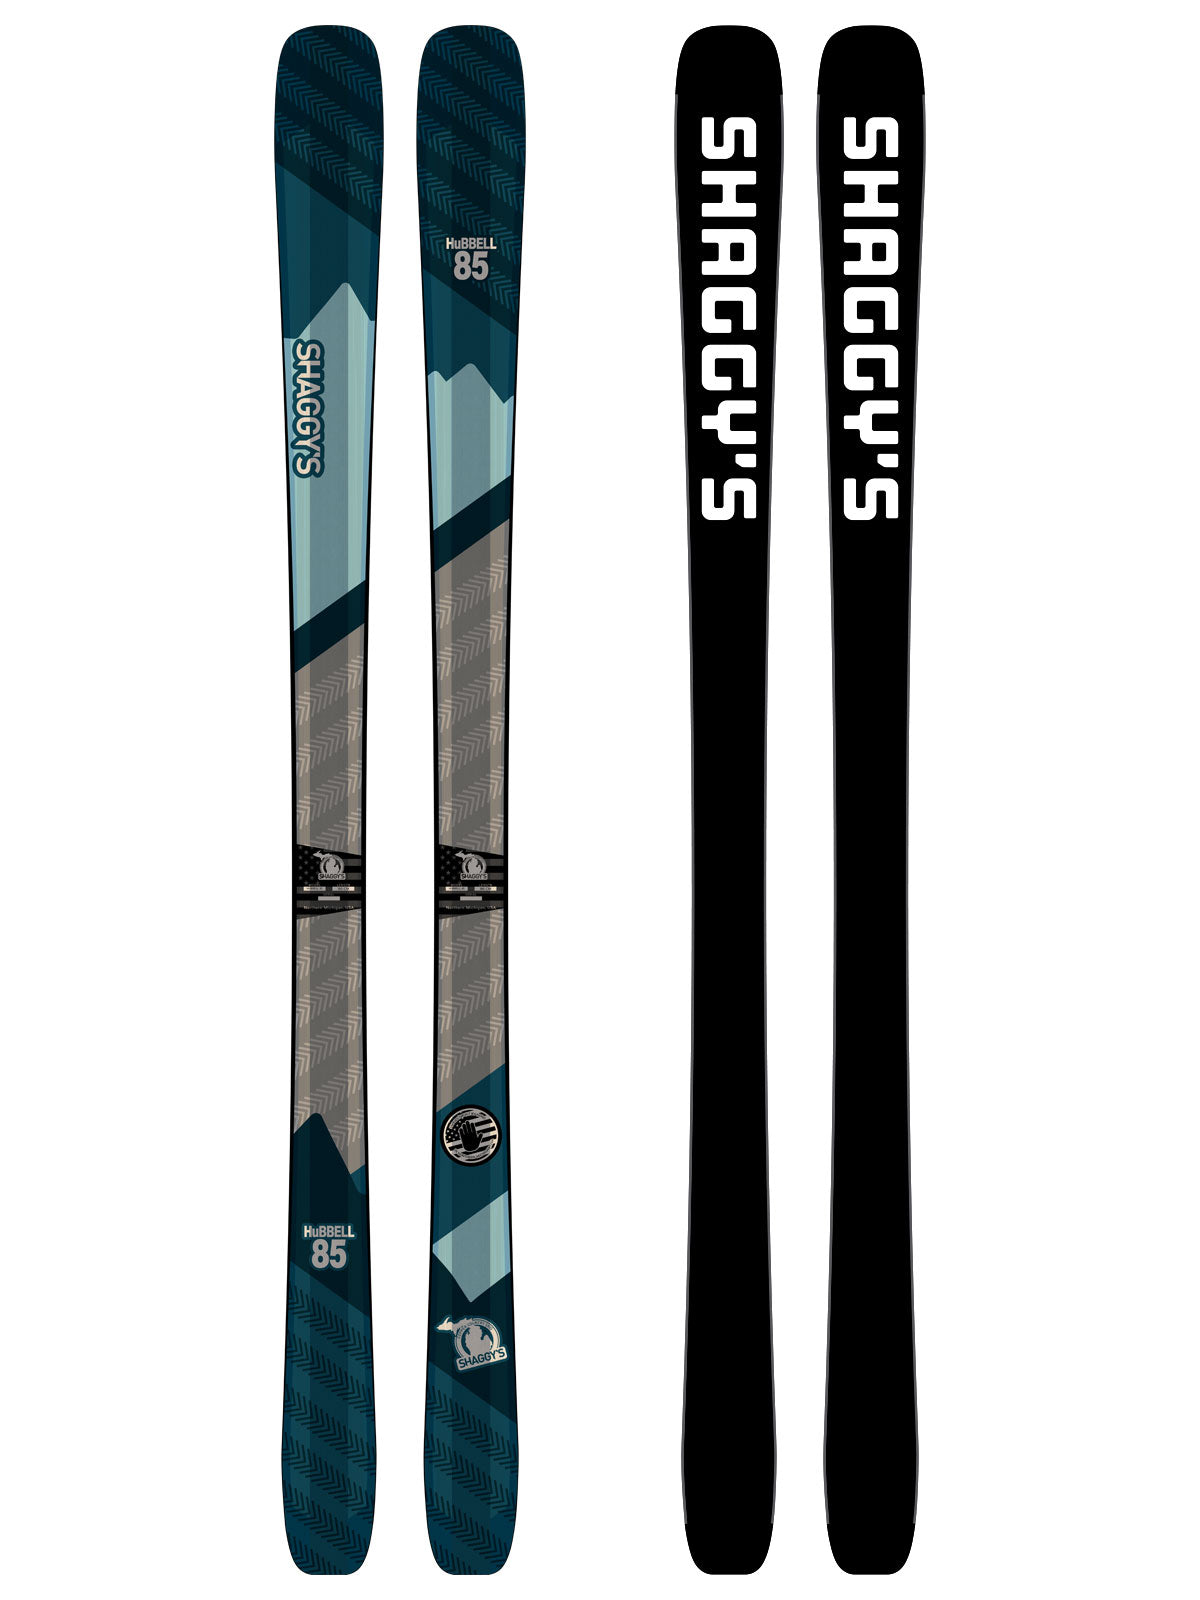 2019 Hubbell 85 -- Frontside All Mountain Skis - Shaggy s Copper ... c6d42c2b5372